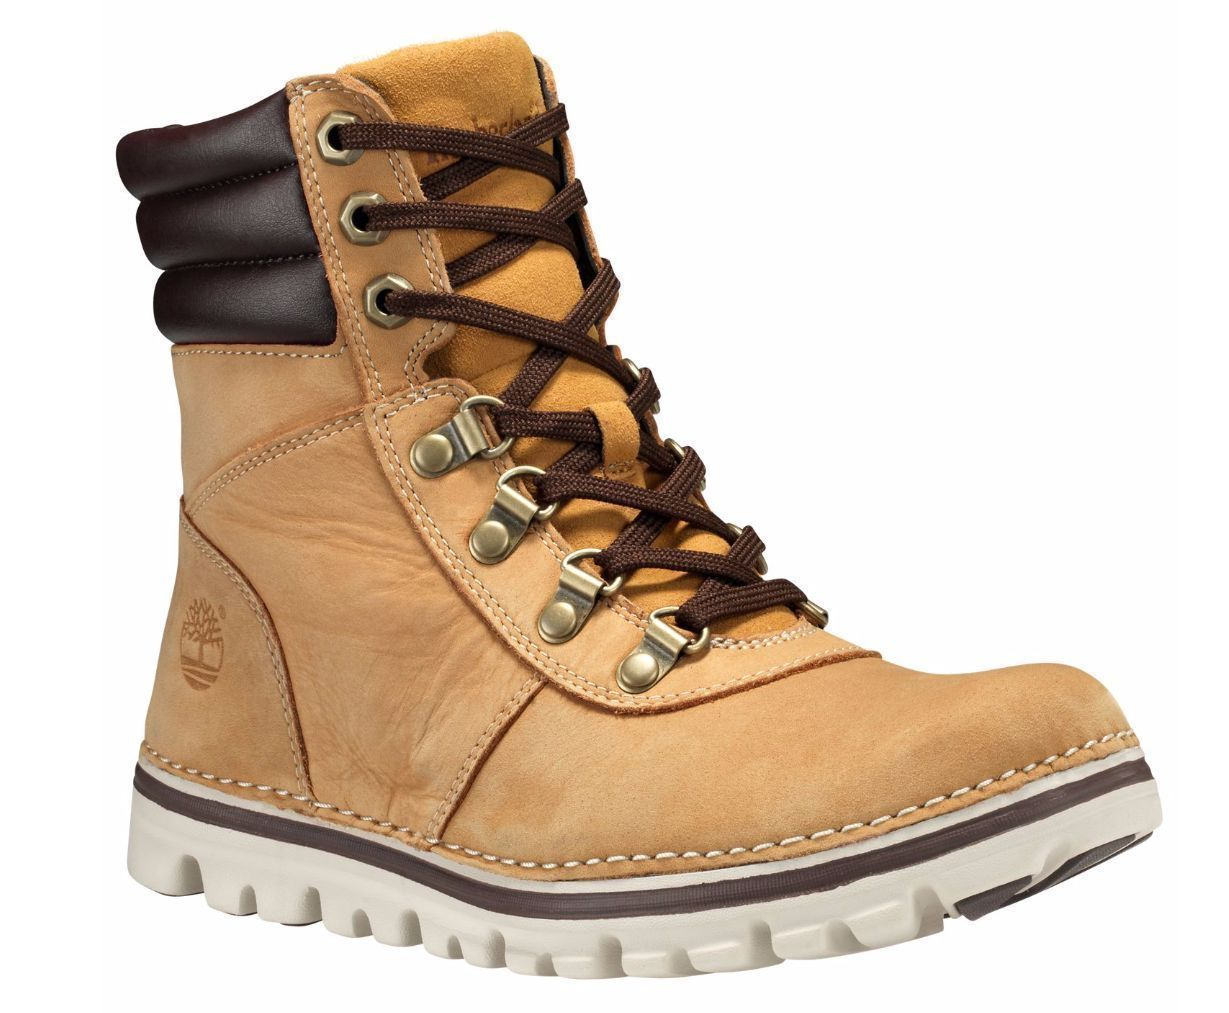 alto Perth oscuridad  Timberland Women'S Ortholite Conant 6 Inch Wheat Yellow Lightweight Boots  A12By   Boots, Lightweight boots, Timberland boots women